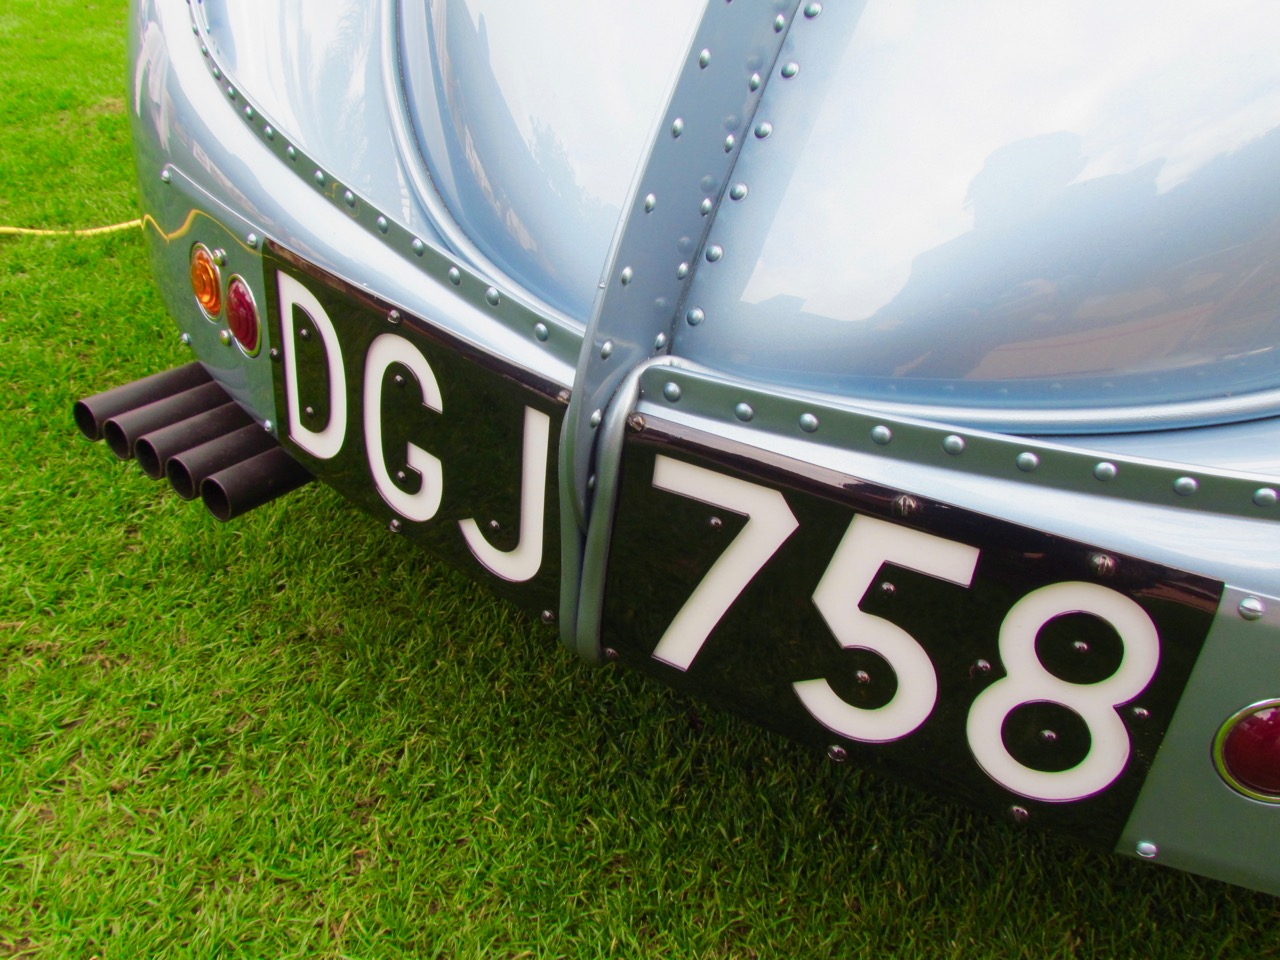 Riveted-together aluminum body panels on the 1936 Bugatti Type 57SC Atlantic